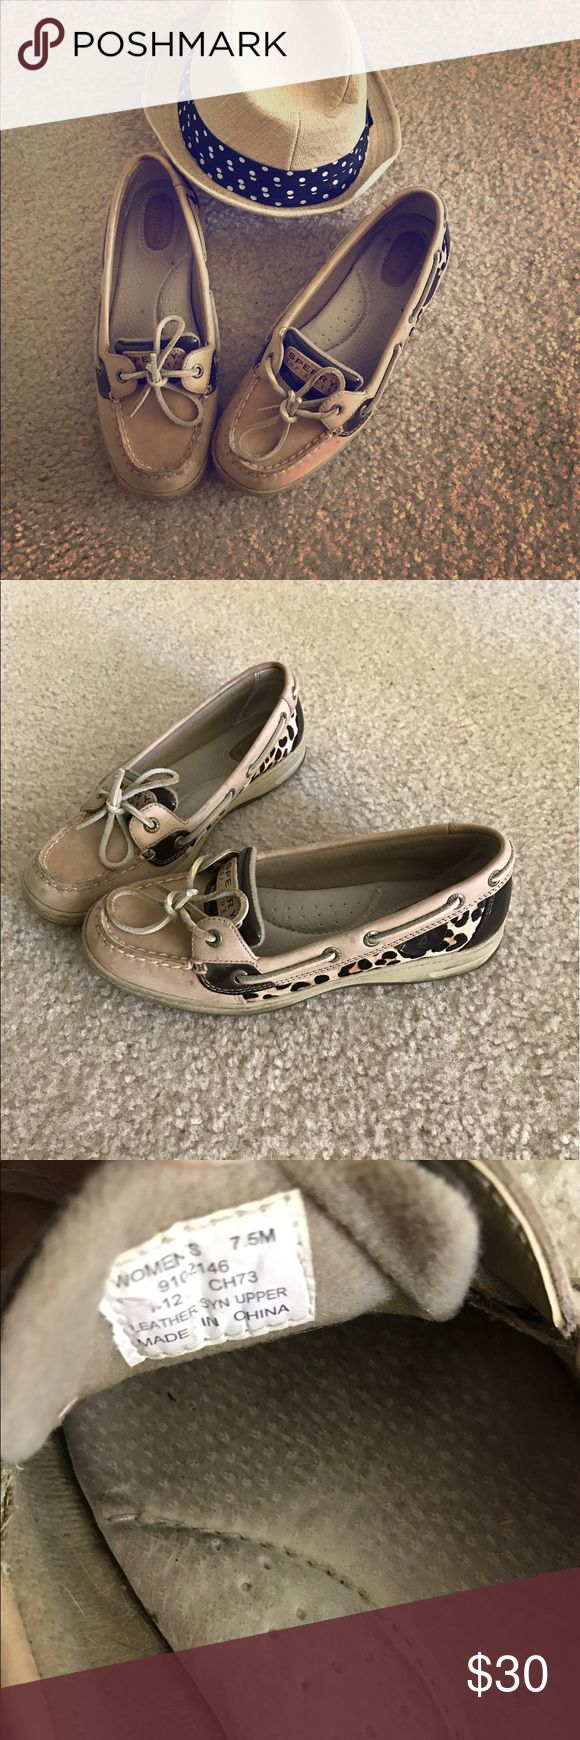 Sperry boat shoes For sale-sperry boat shoes with cheetah accents. Bought 4 years ago, worn about 6 times-have been sitting in my closet for awhile. Shows some signs of wear but many years left. Look great with jeans. Open to offers! Sperry Shoes Sneakers